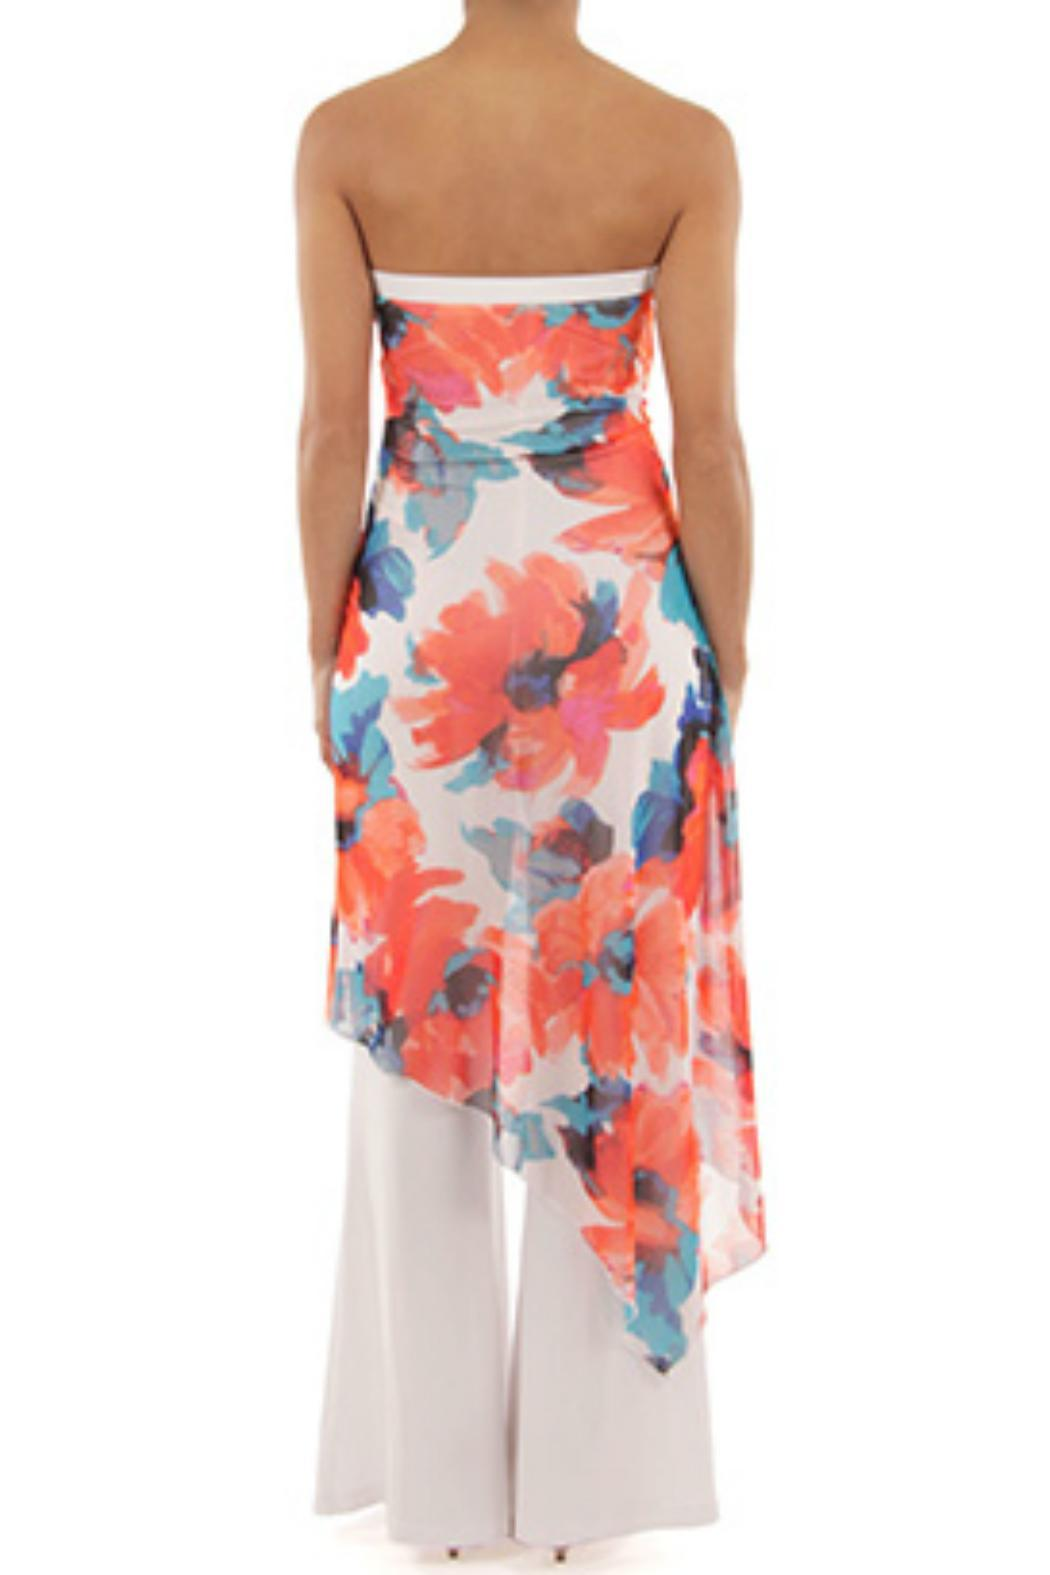 715a20a411f0 Joseph Ribkoff Wide Leg Jumpsuit from Vancouver by Jet-Lag Travel ...